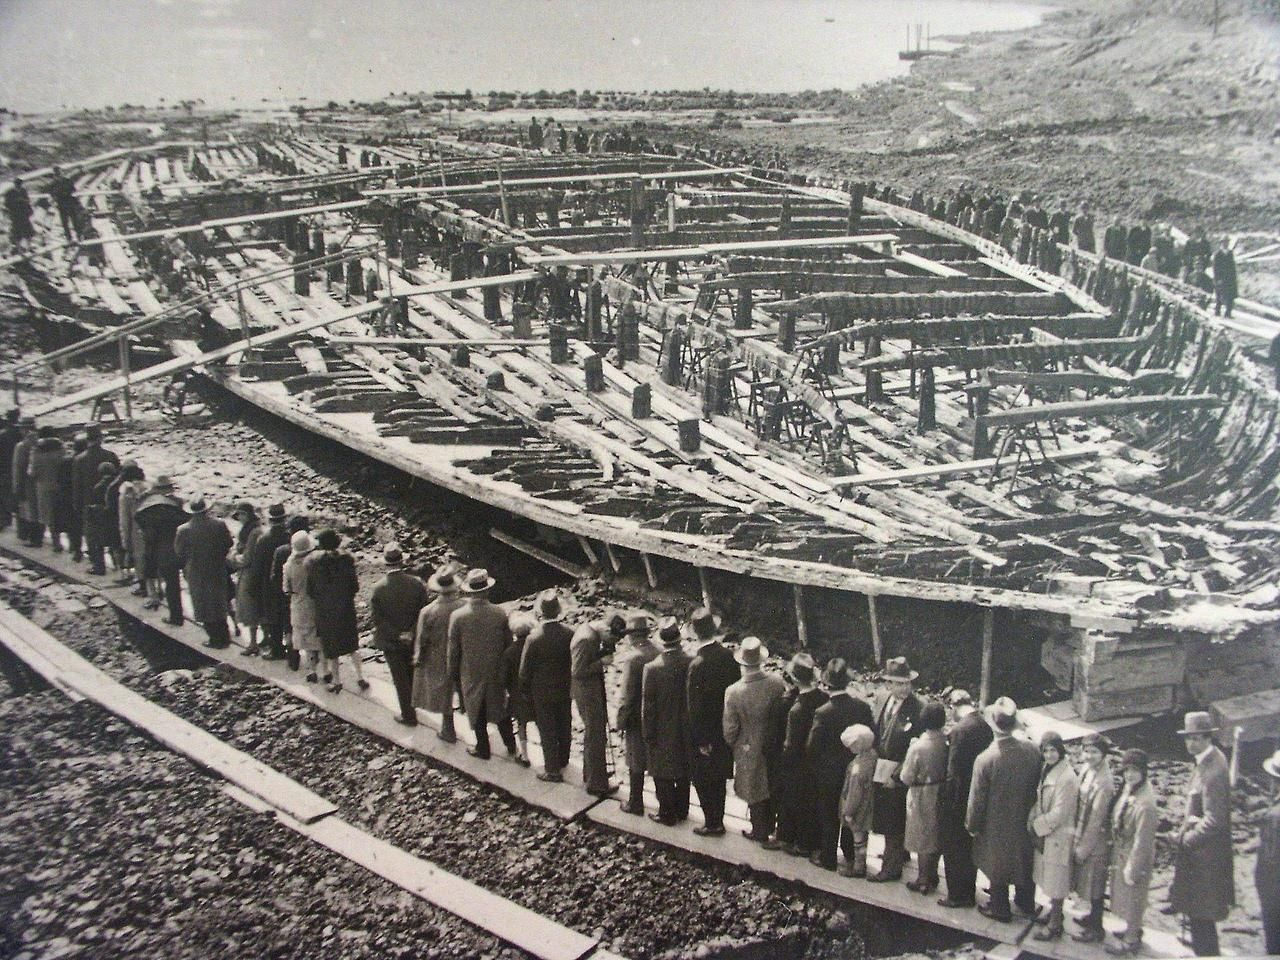 Visitors Walking Past The Remains Of A Ship Built By Emperor Caligula In The 1st Century Ad The Ship Would Have Been An Photo History Rare Historical Photos